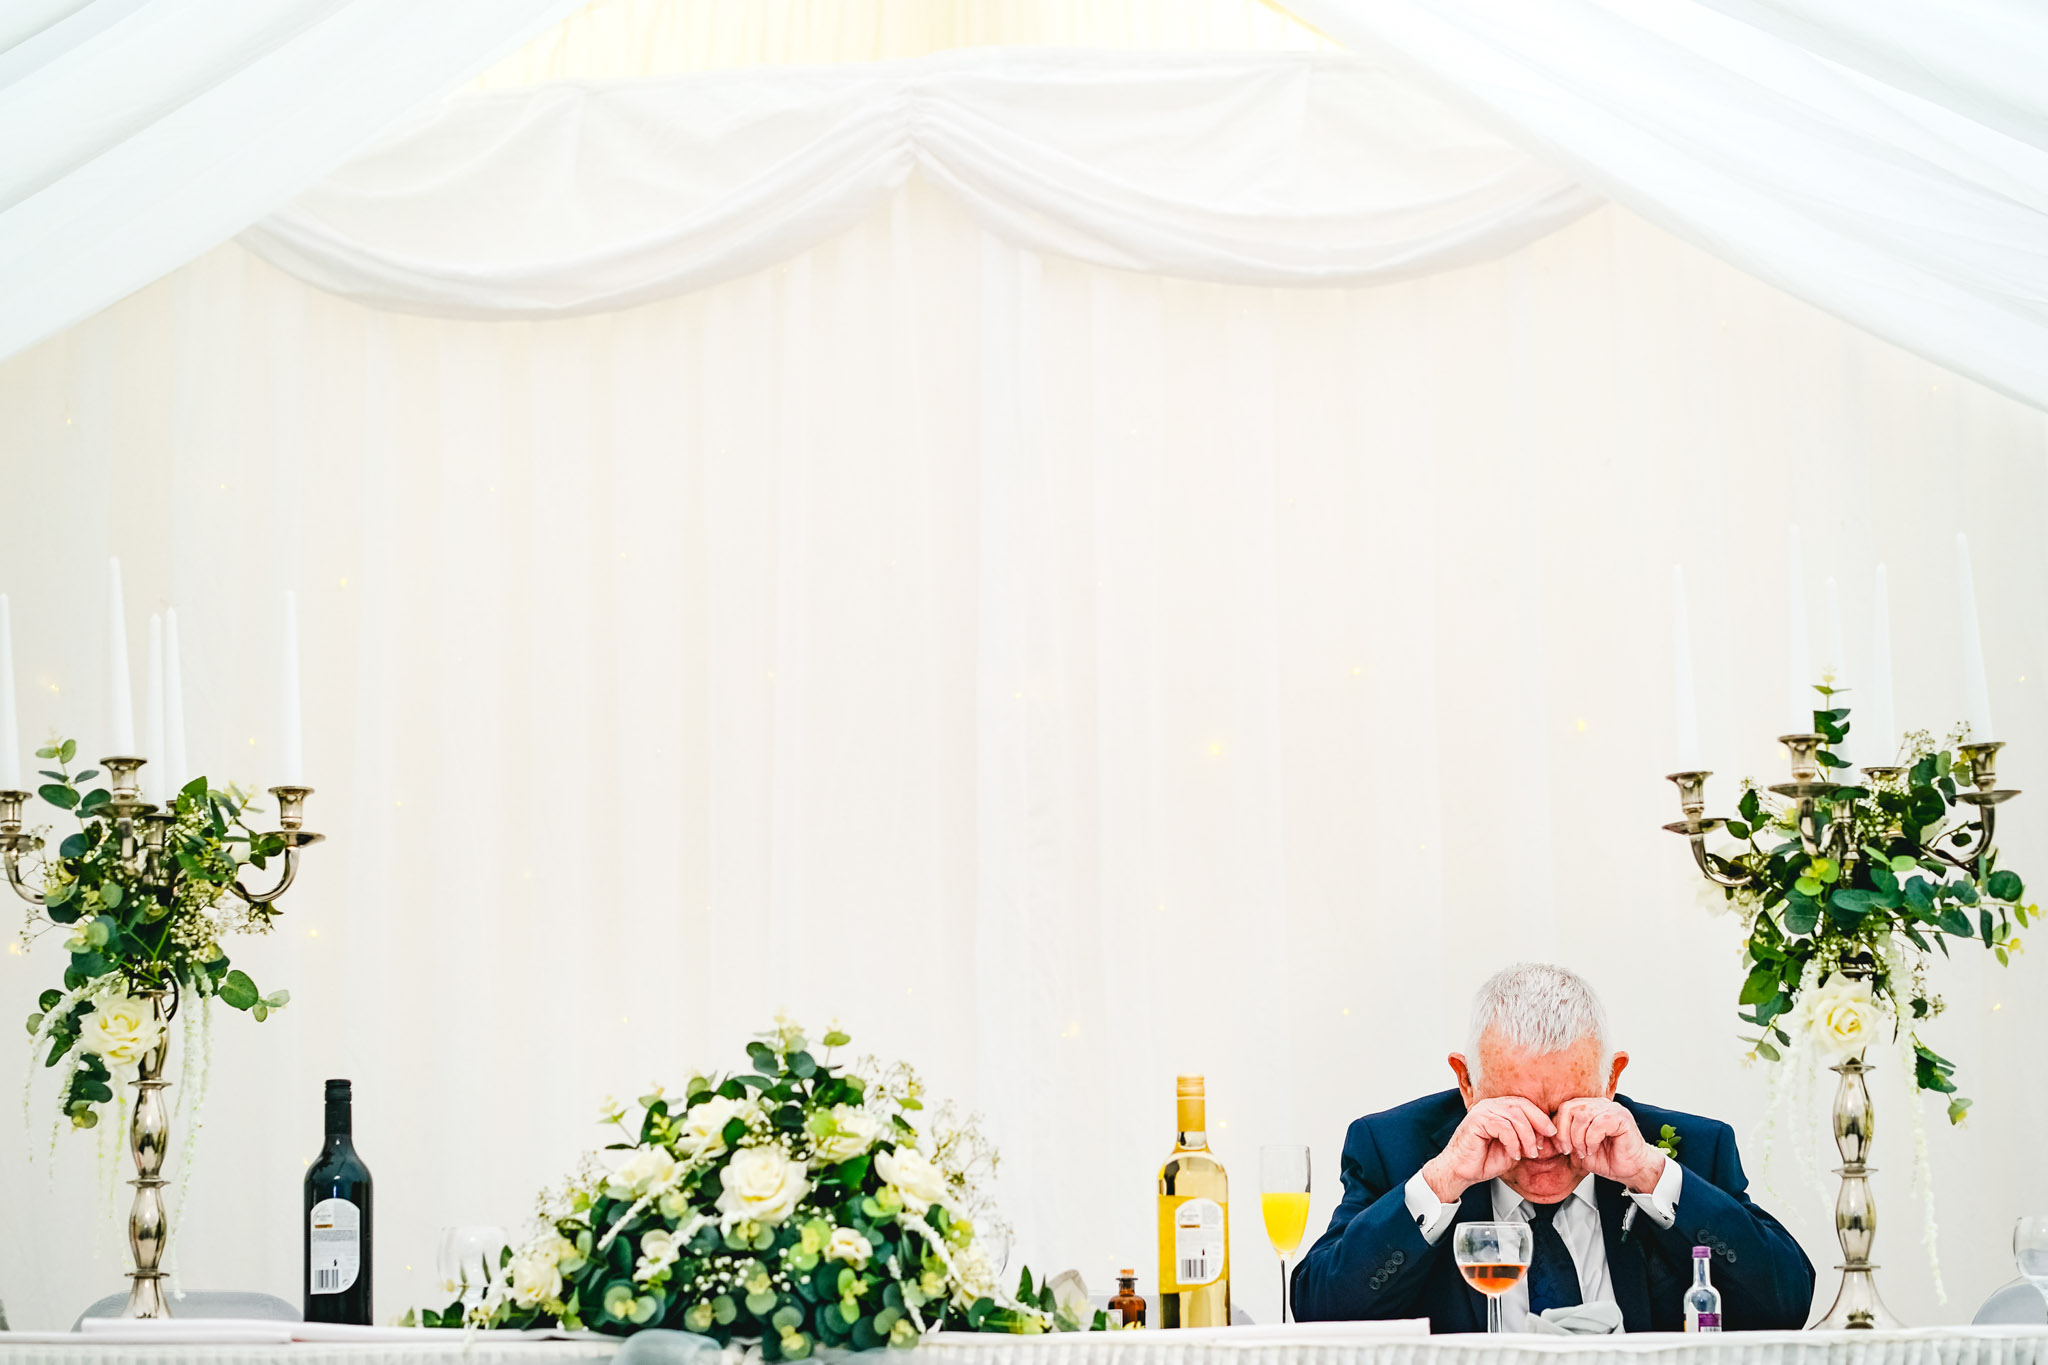 dad-dries-at-wedding-reception-table-andrew-billington-photography